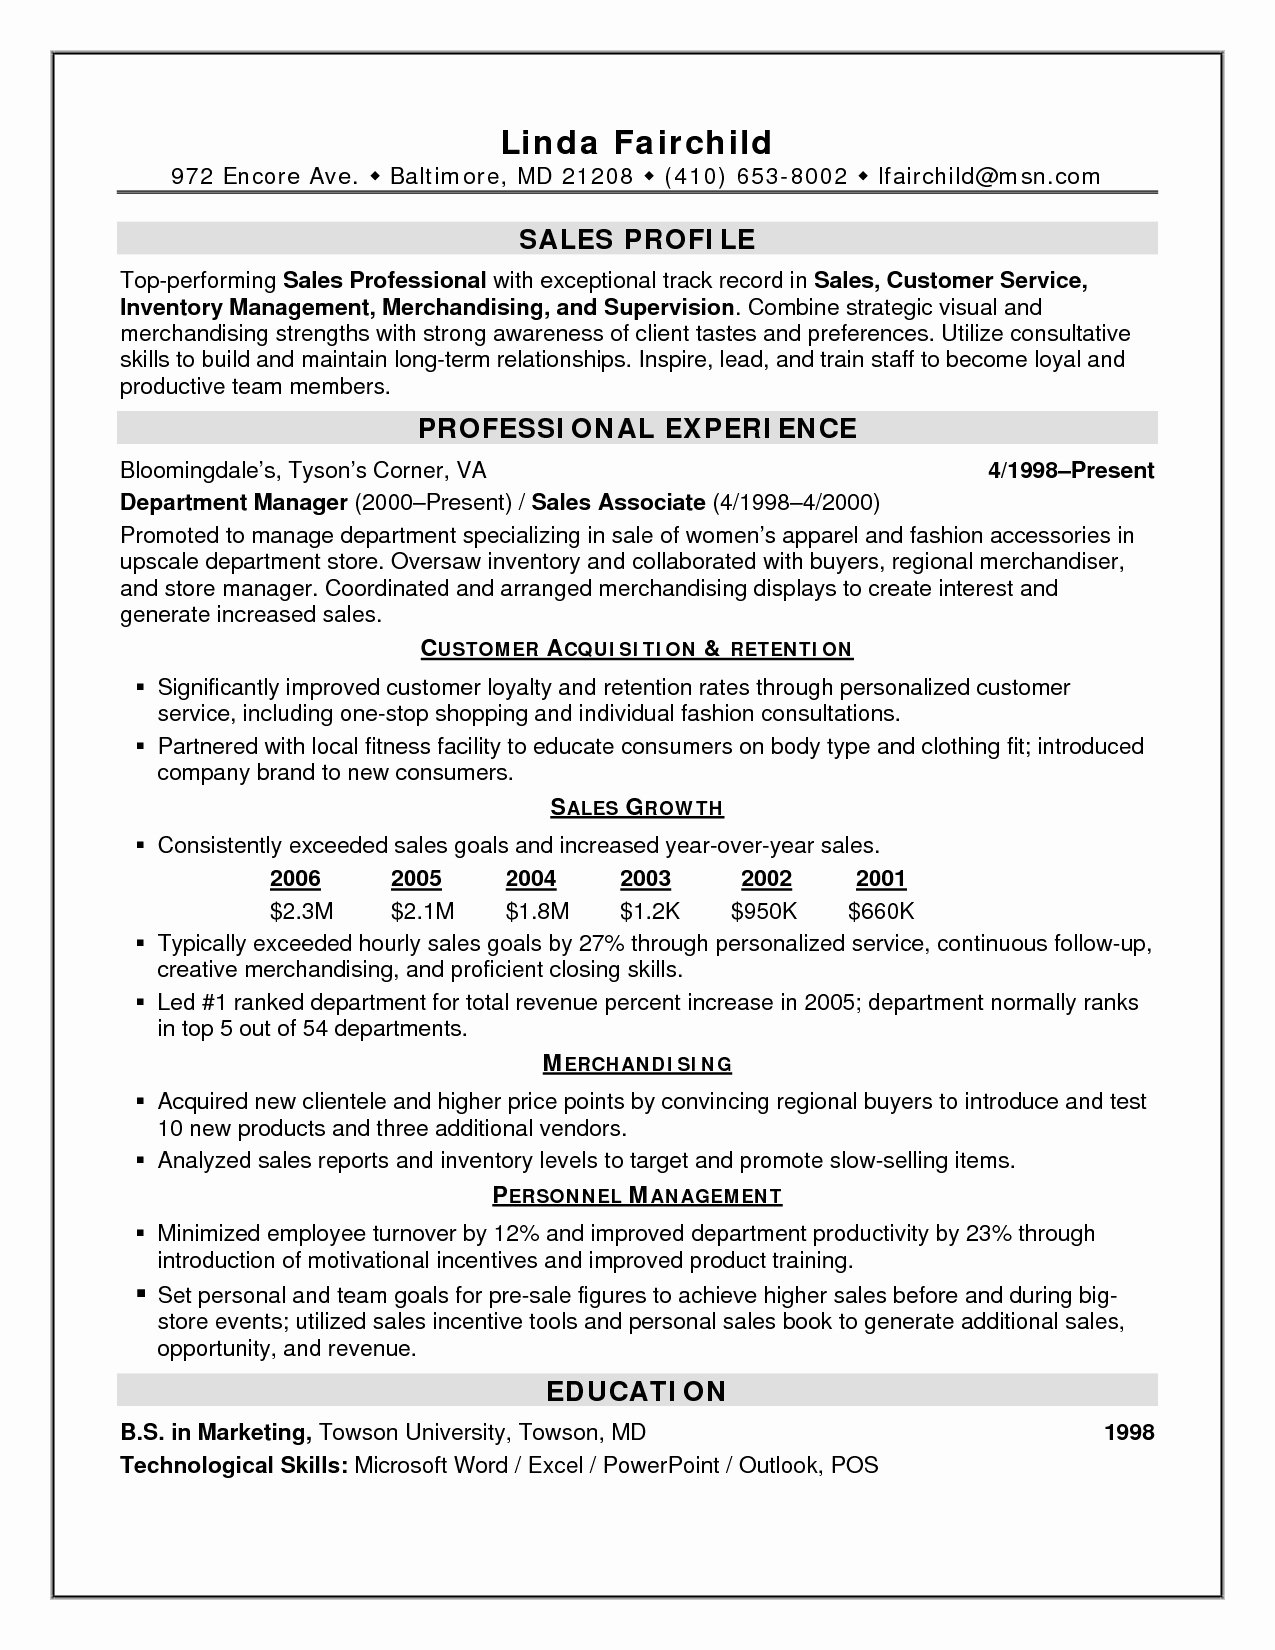 Grocery Store Manager Resume Luxury Grocery Store Resume Examples Cover Letter Samples